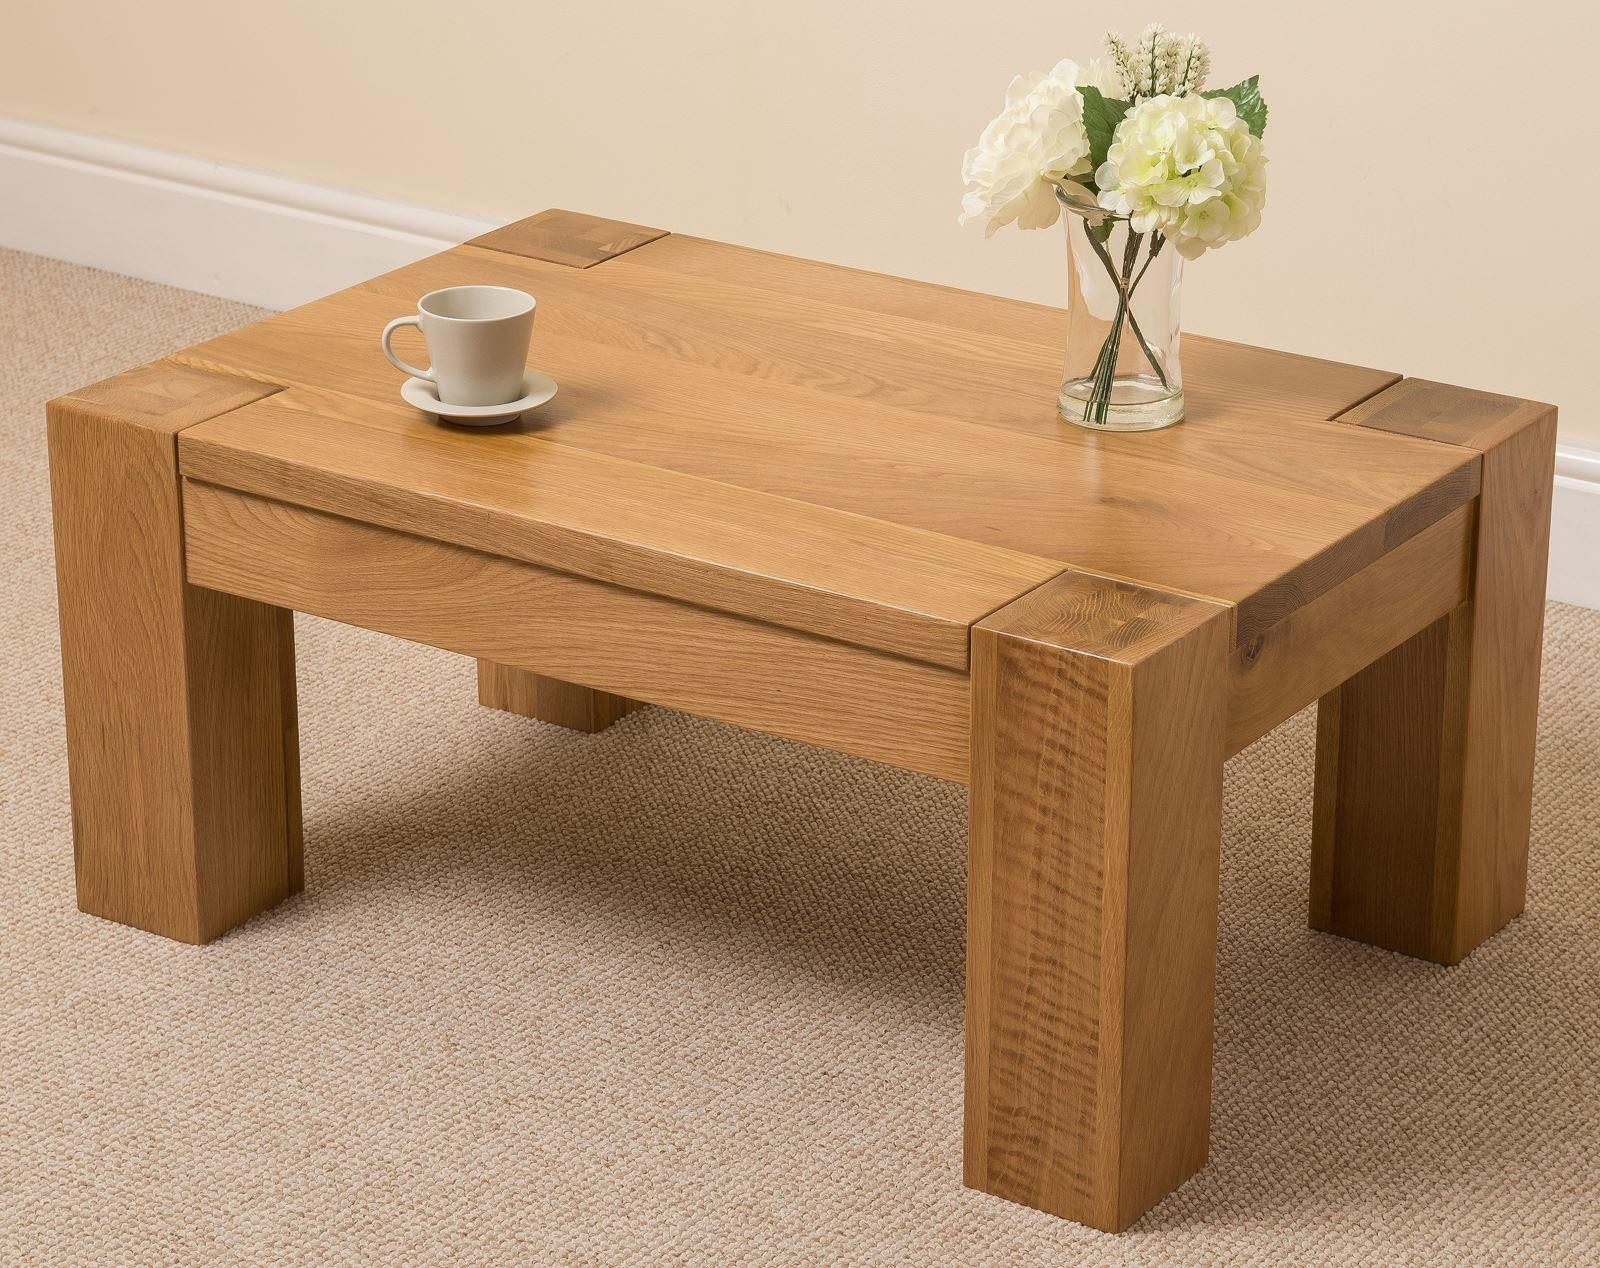 Solid Light Wood Coffee Table Coffee Tables - Rustic light wood coffee table